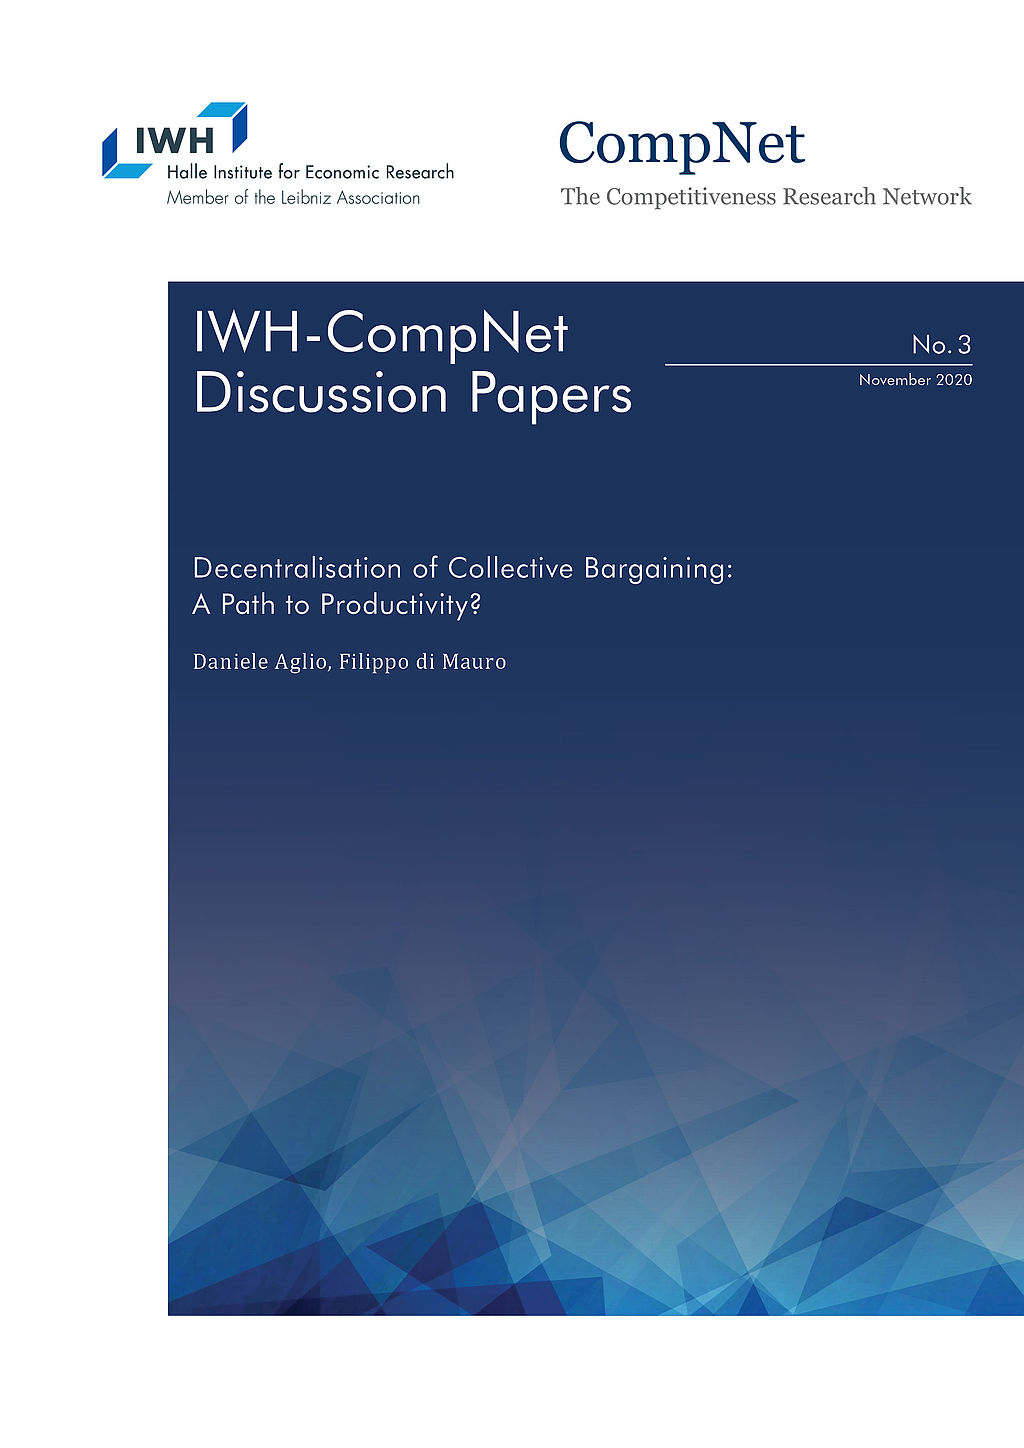 cover_IWH-CompNet-DP_03_2020.jpg